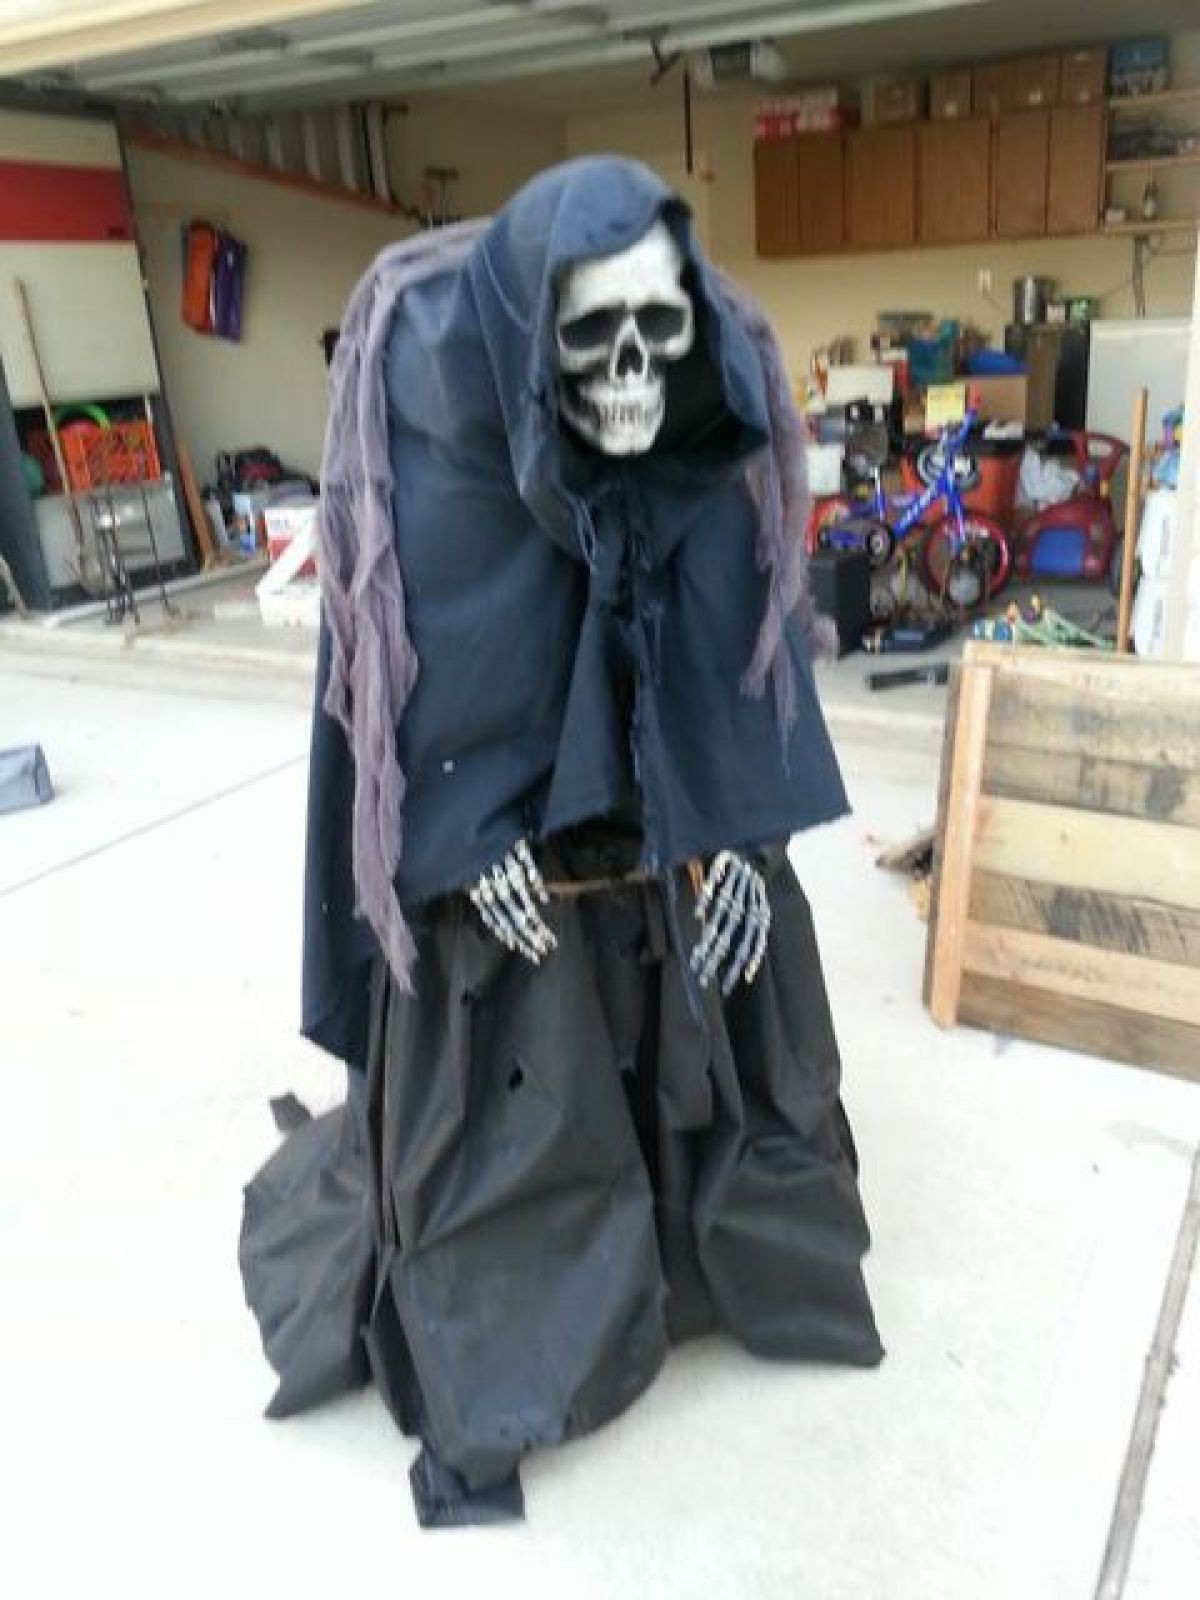 8 More Horrifically Haunting Halloween Decorations